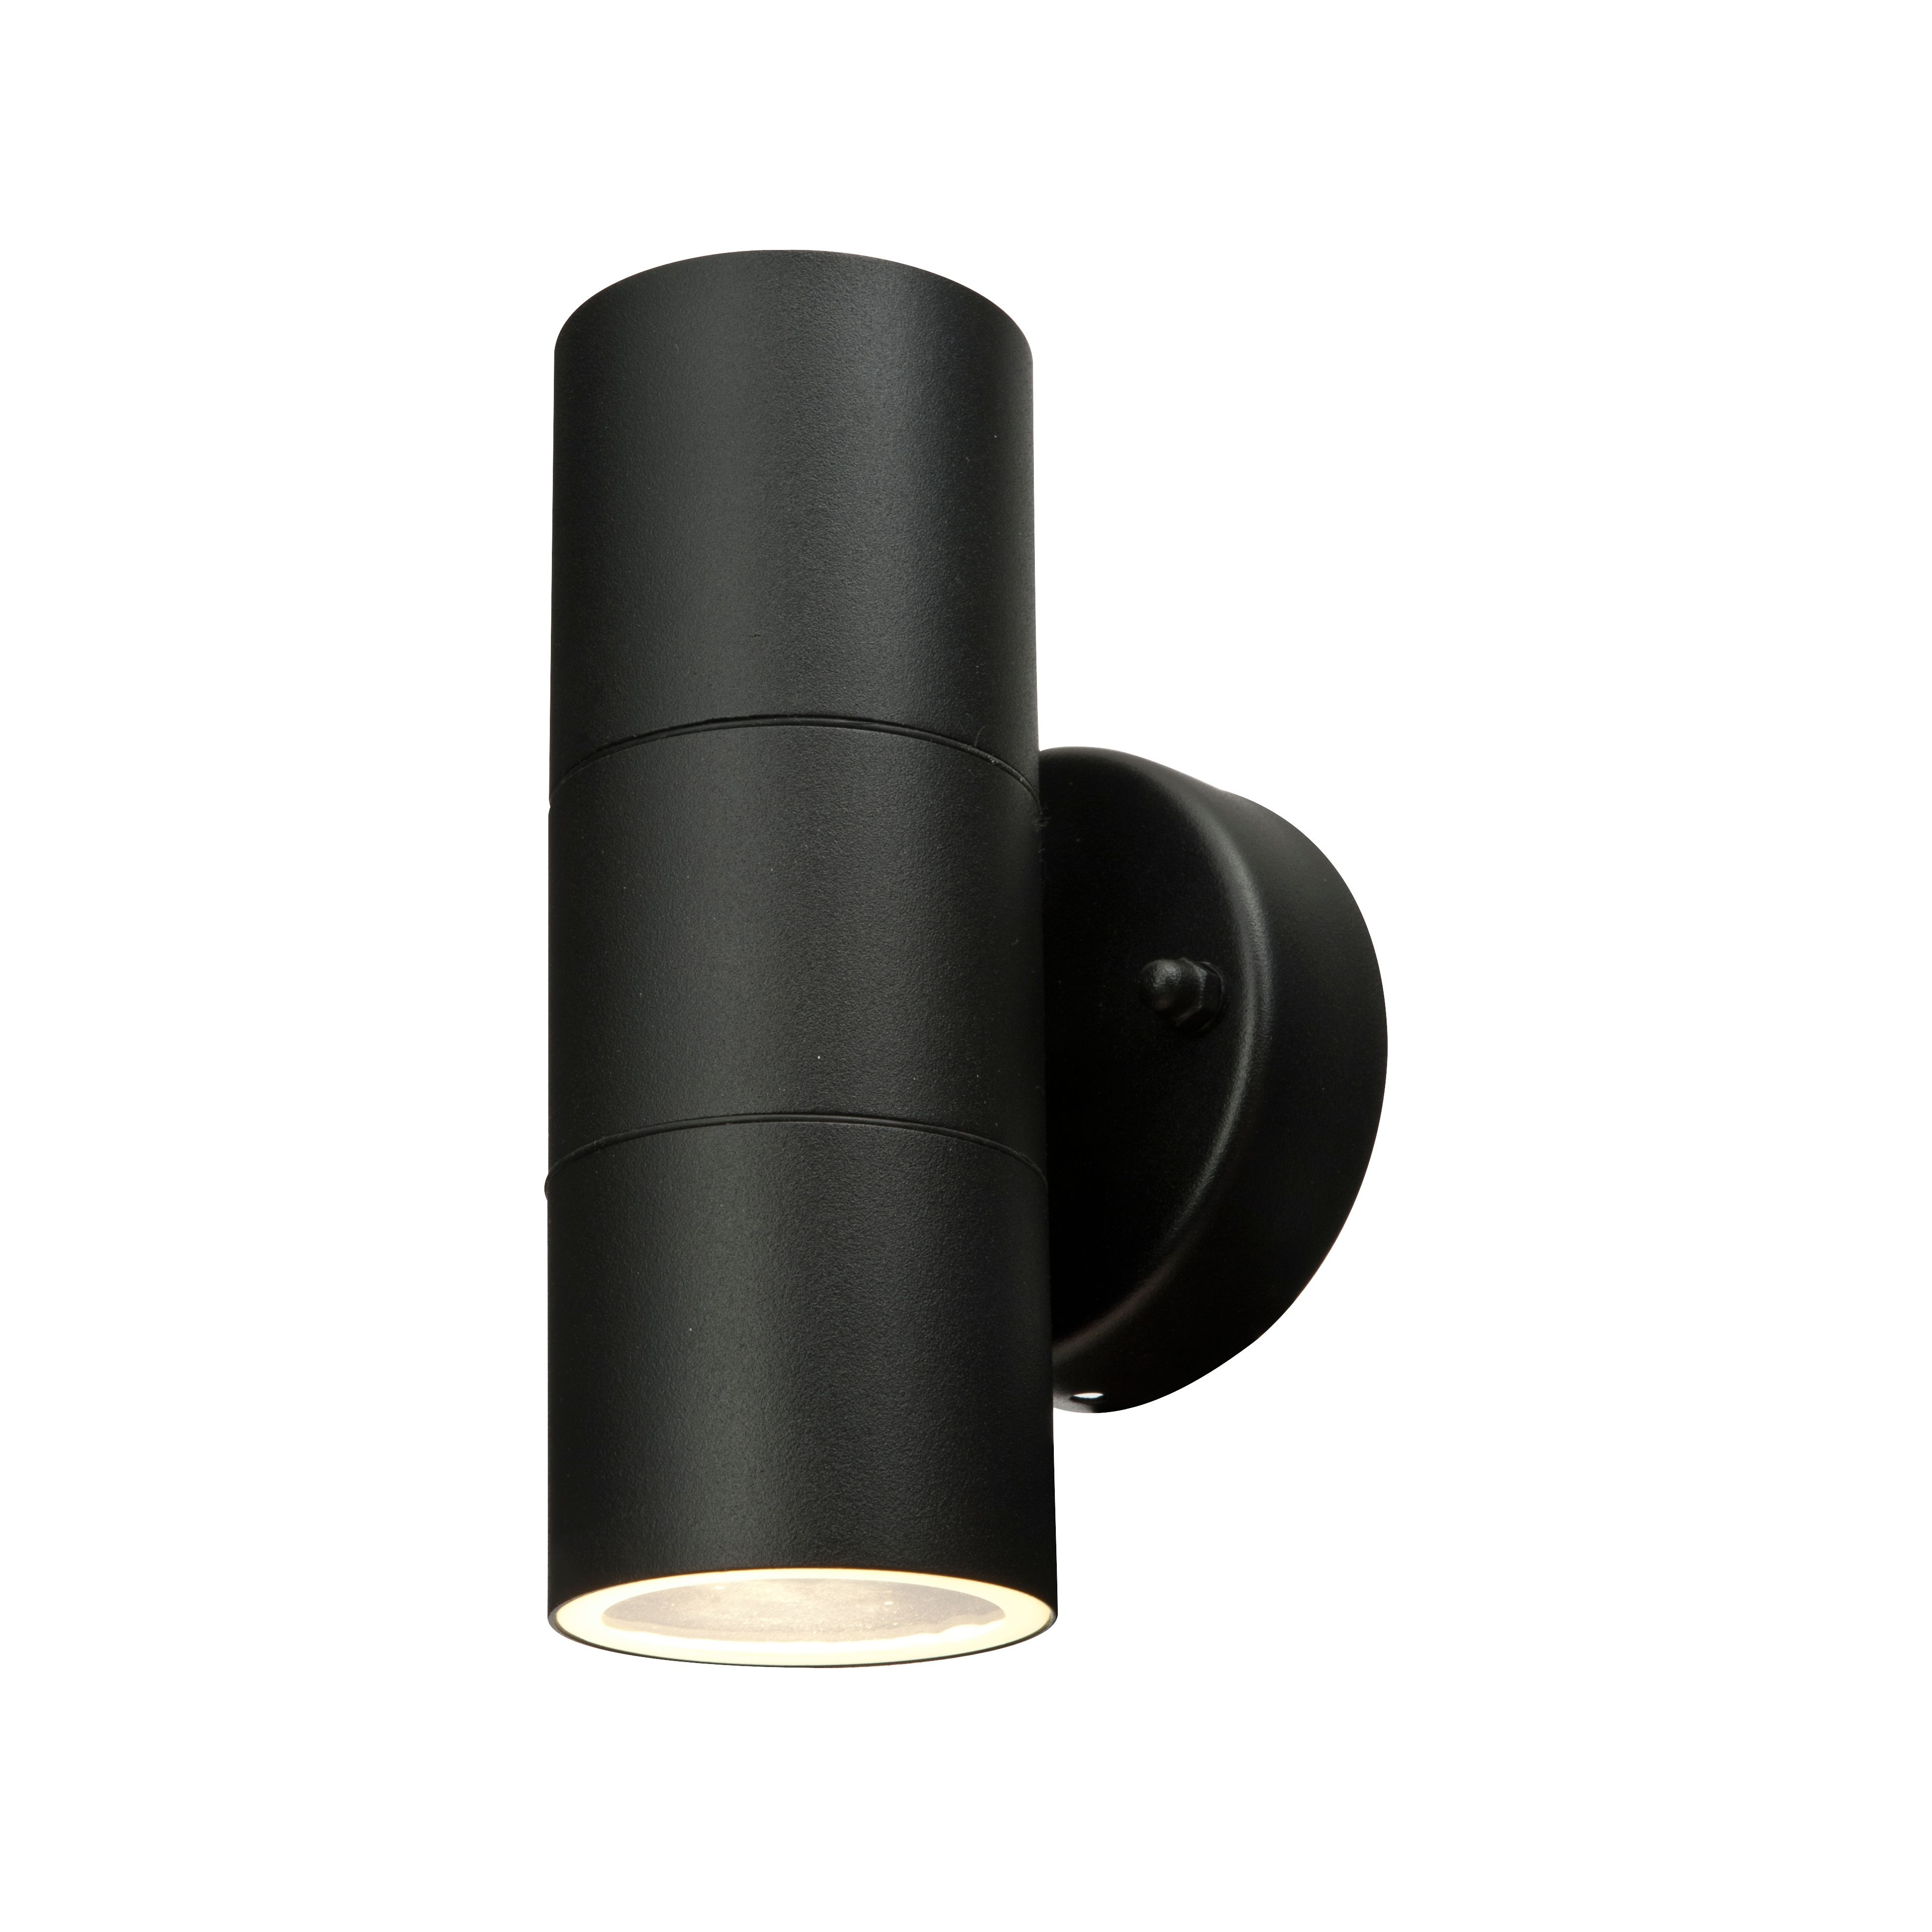 Outdoor Exterior Wall Lighting Throughout Trendy Blooma Somnus Black Mains Powered External Up & Down Wall Light (View 14 of 20)